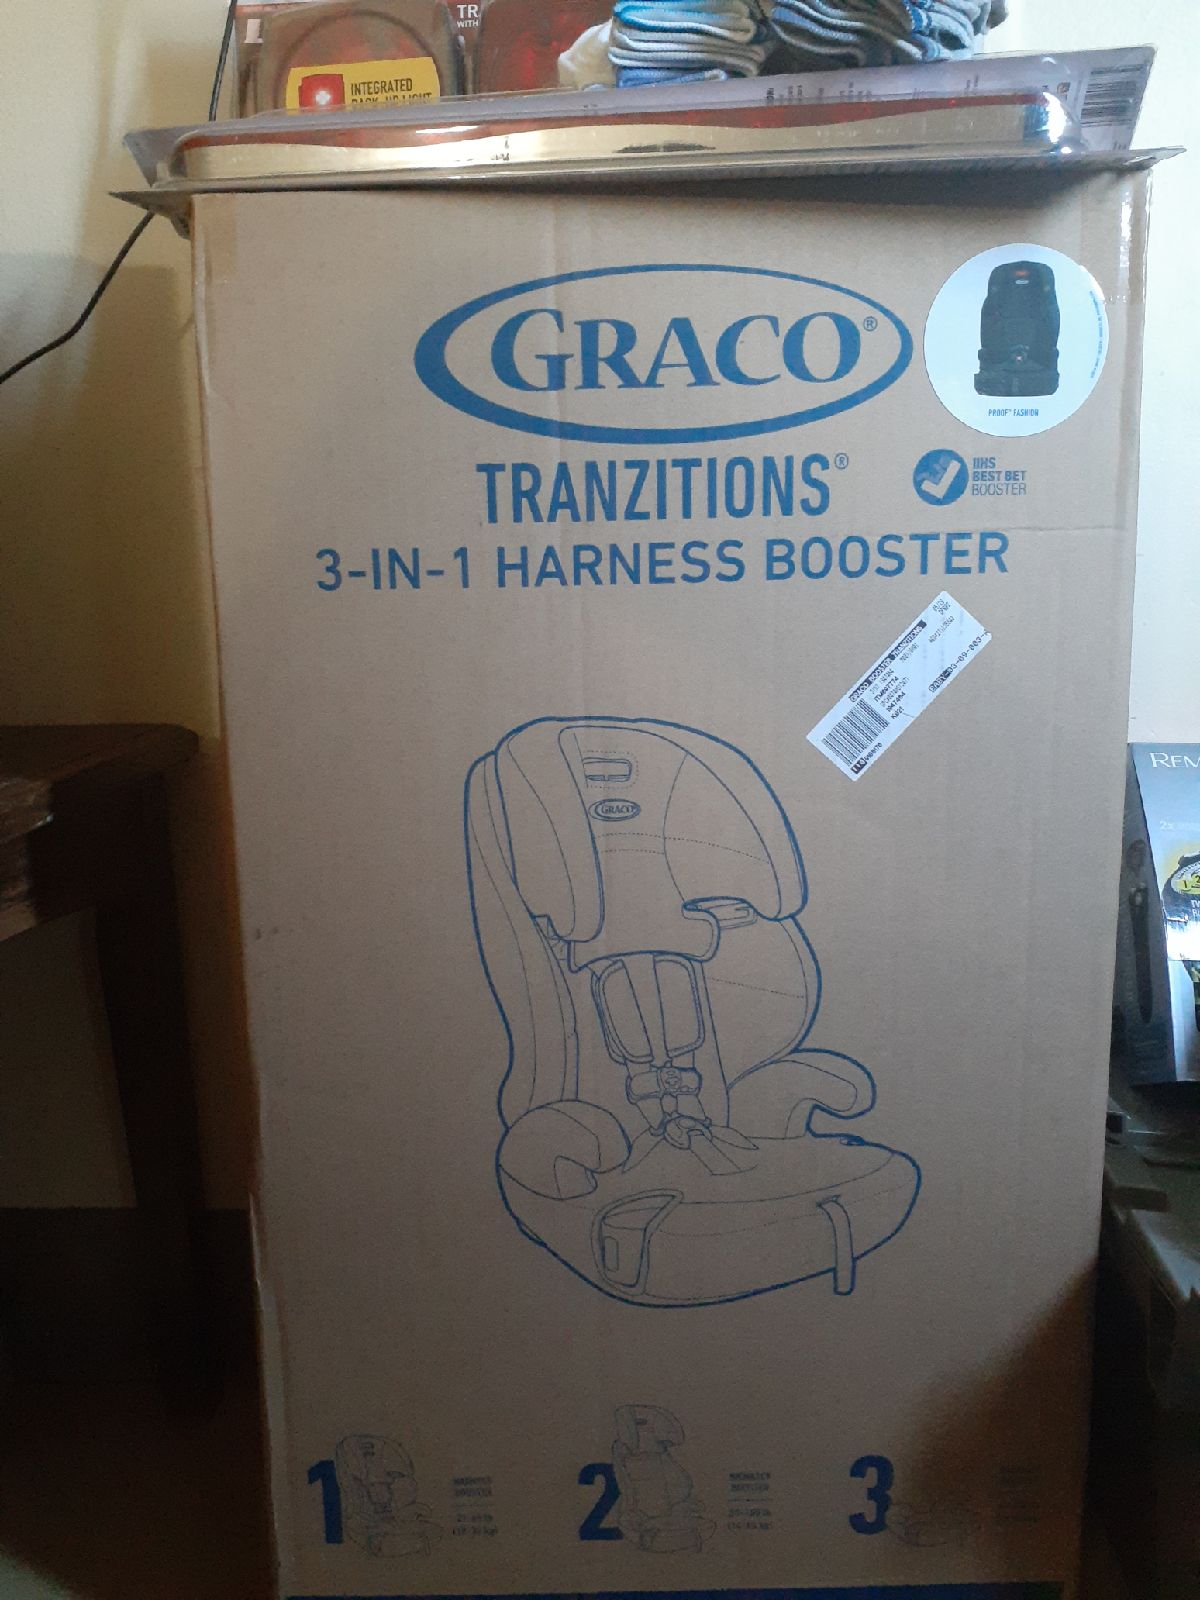 Graco Tranzitions 3 in 1 harness booster